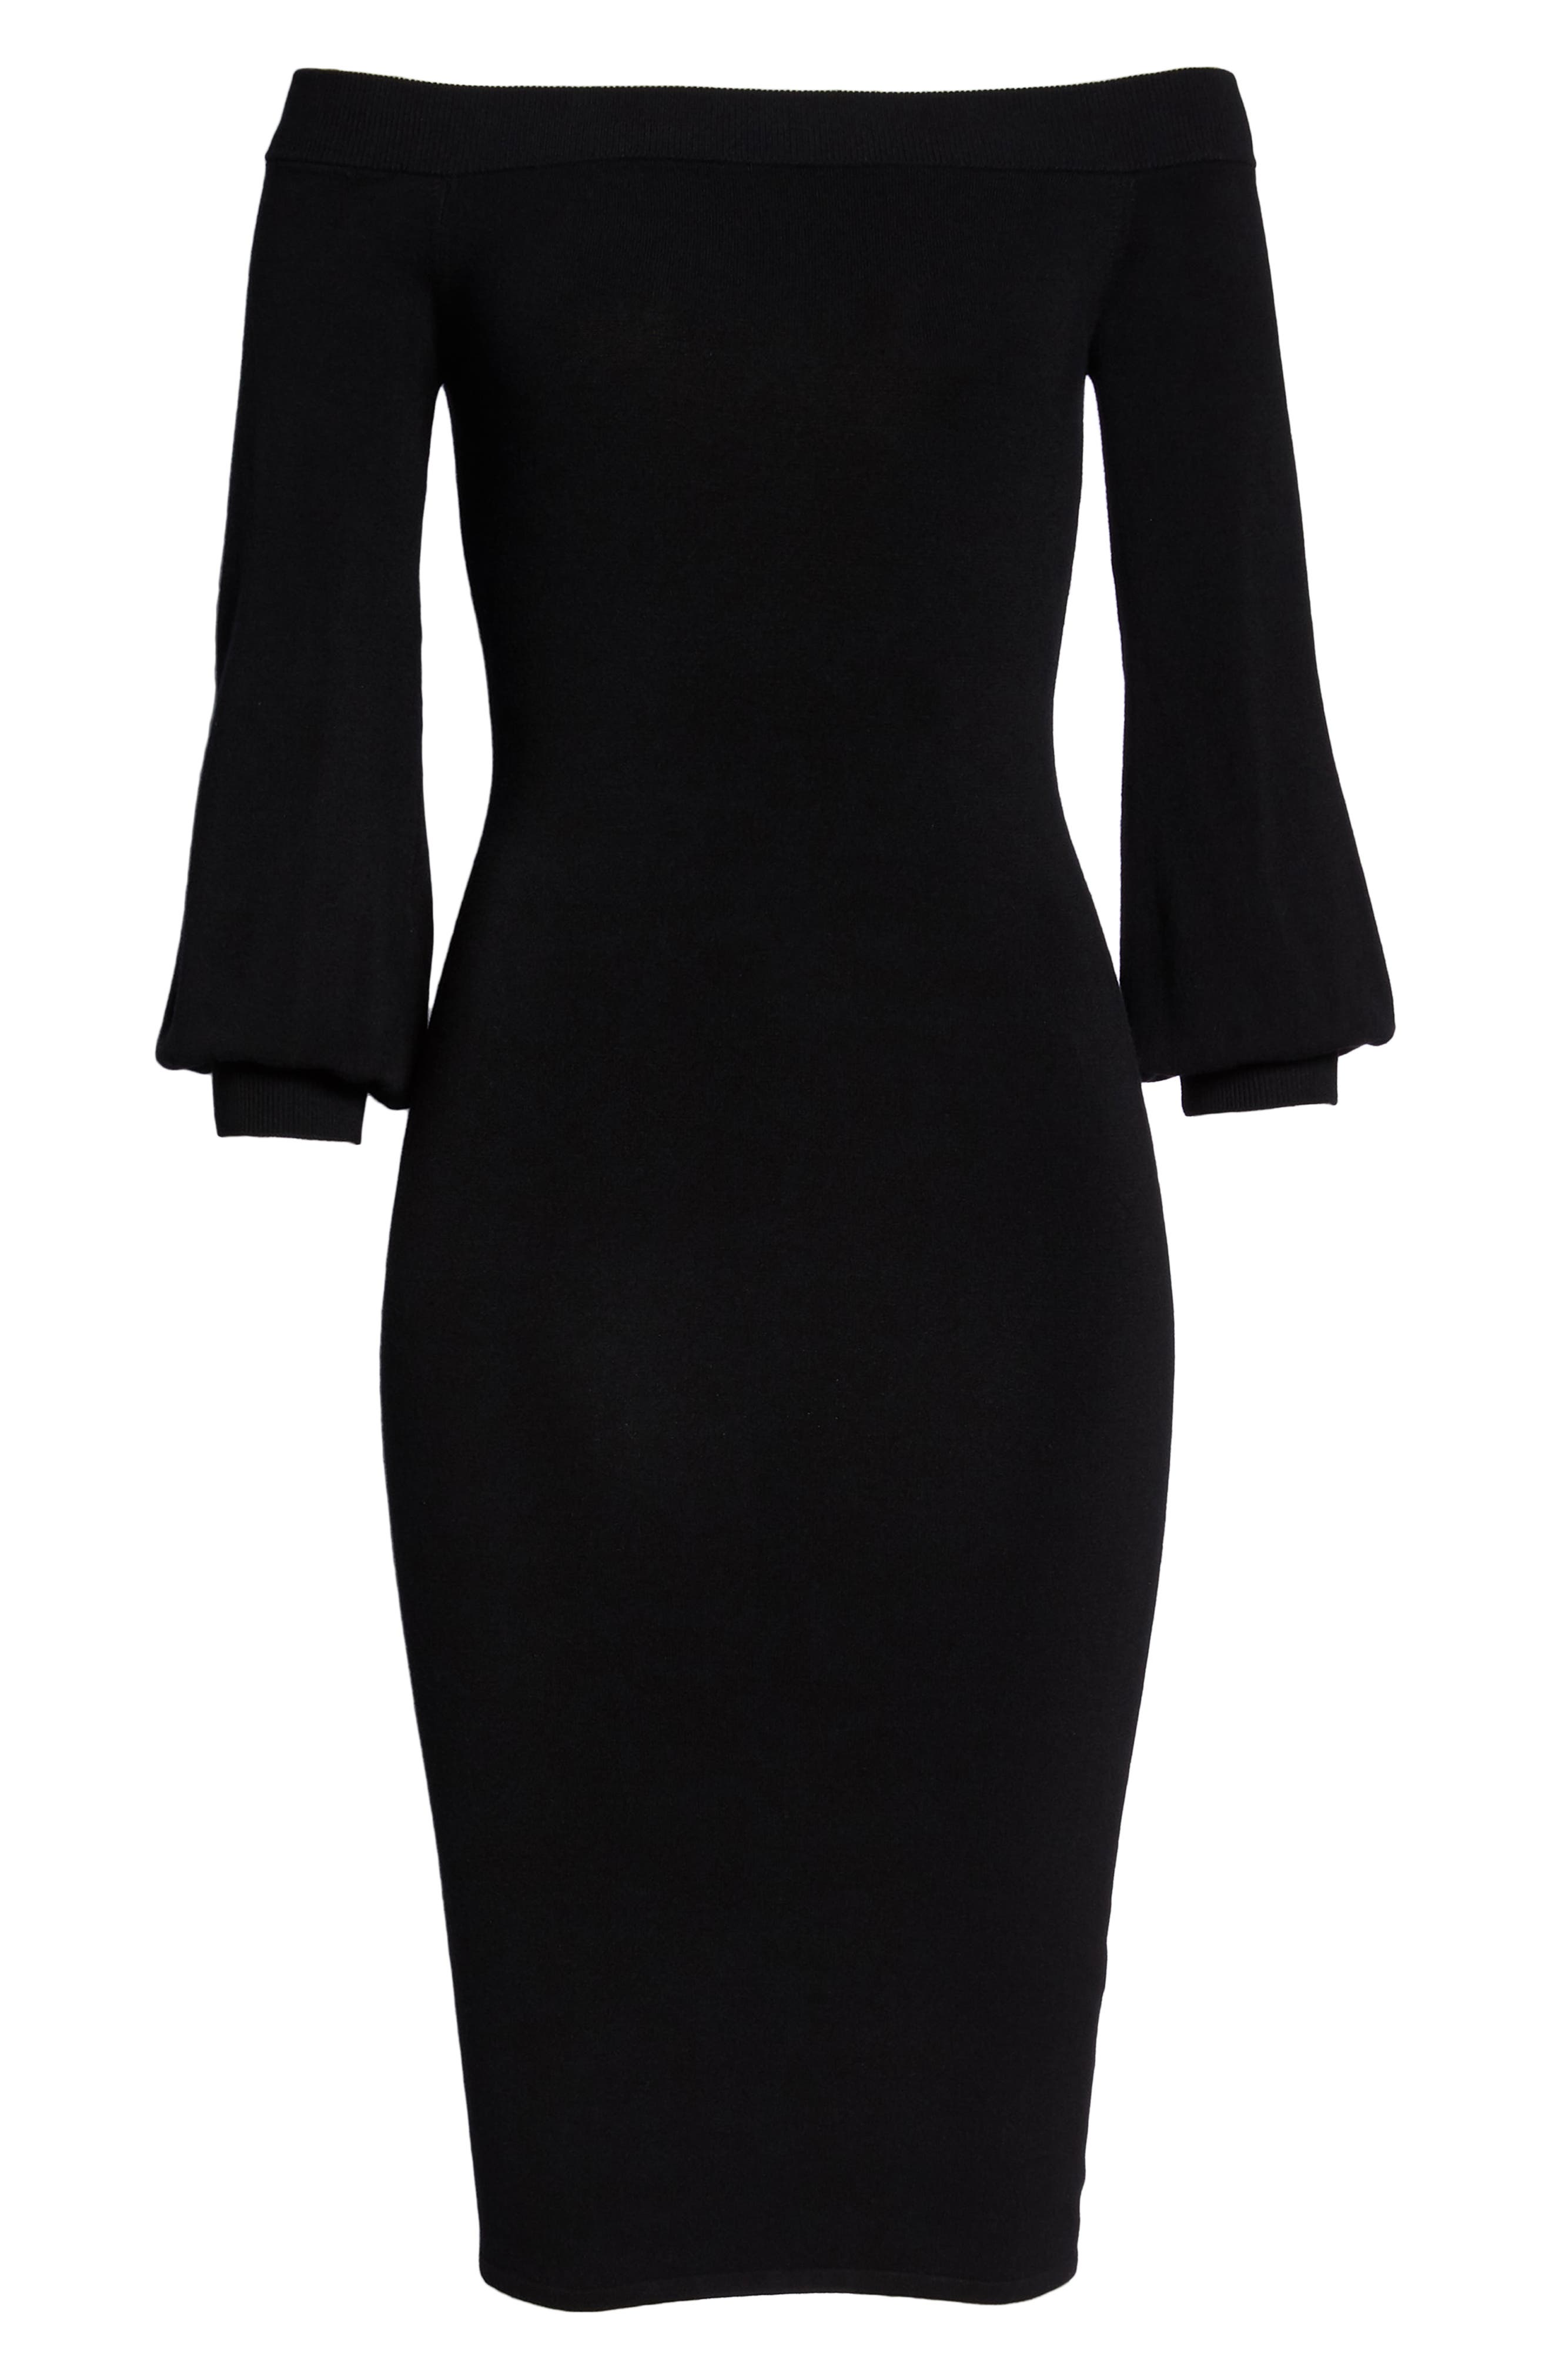 ALI & JAY, Standing Strong Off the Shoulder Midi Sweater Dress, Alternate thumbnail 7, color, 001